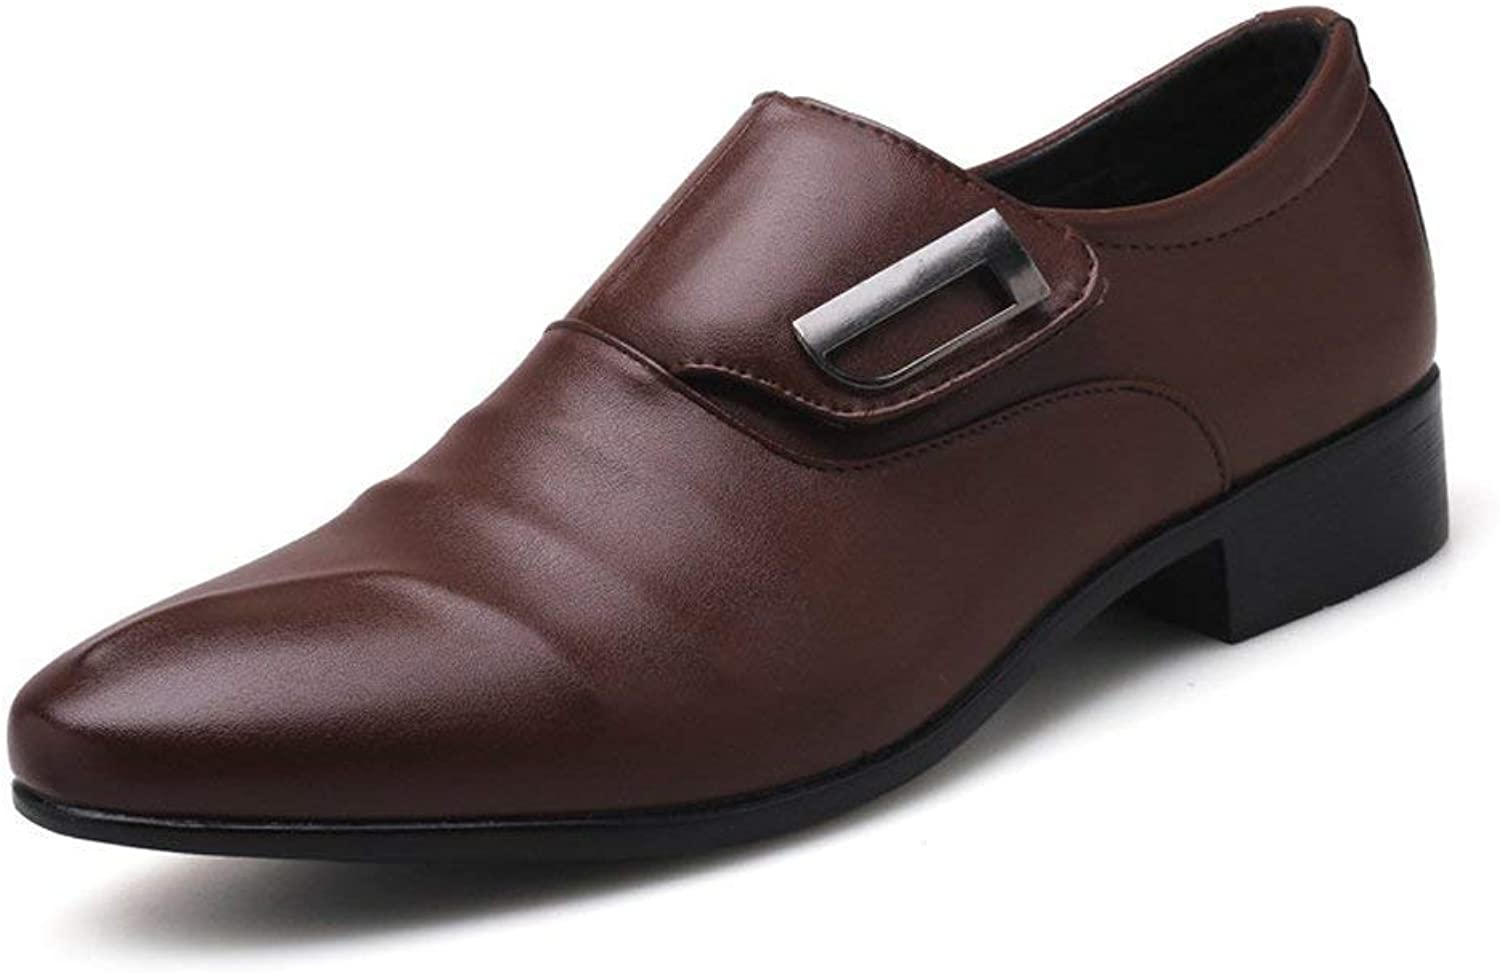 Hhgold 2018 Men's Business shoes Smooth PU Leather Upper Slip-on Breathable Low Top Oxfords (color  Brown, Size  40 EU) (color   Brown, Size   48 EU)